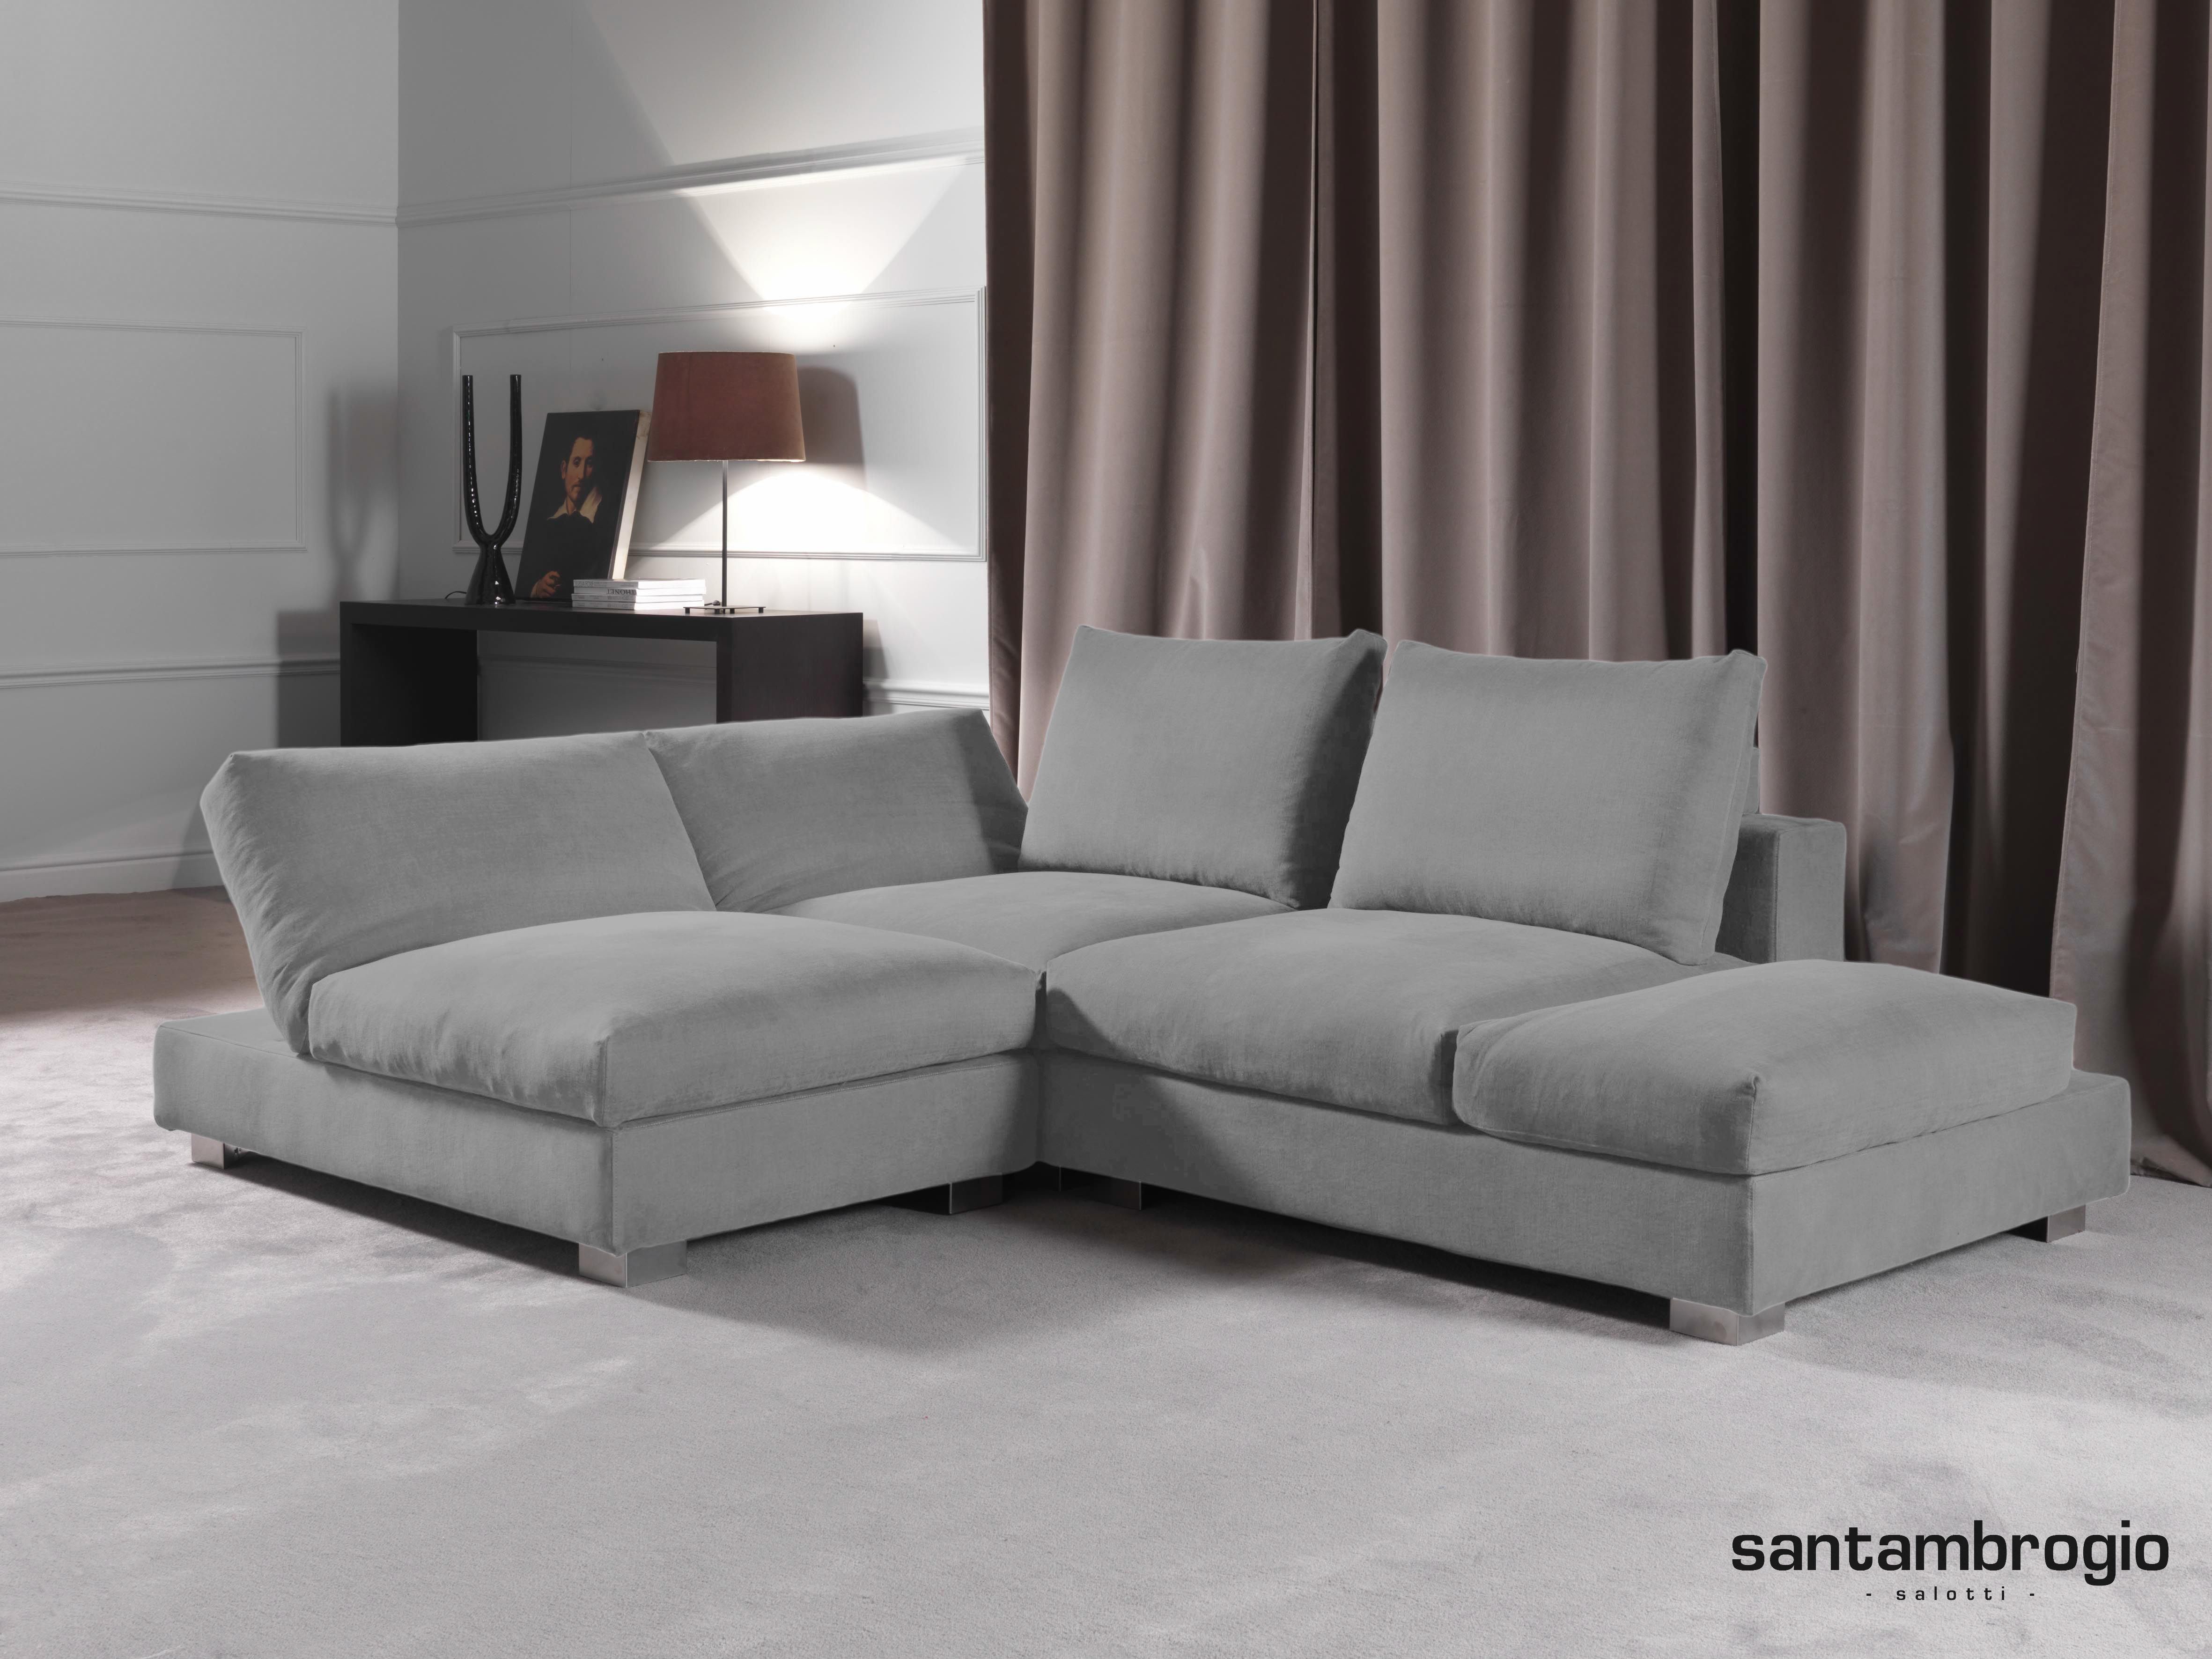 8 best Divano images on Pinterest | Living room, Sectional sofas ...